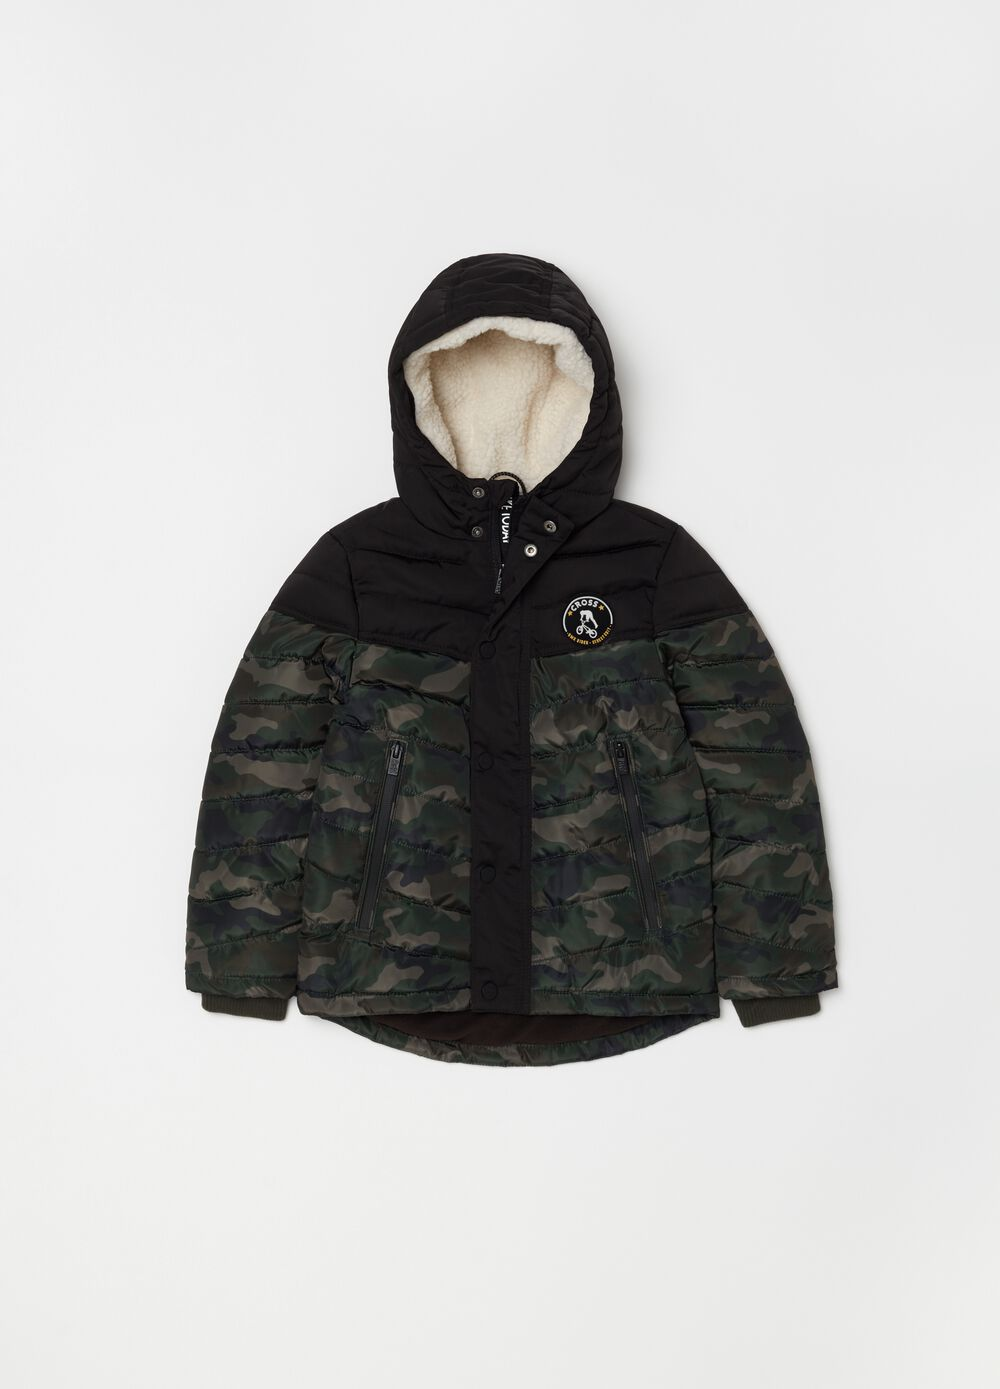 Quilted jacket with camouflage print